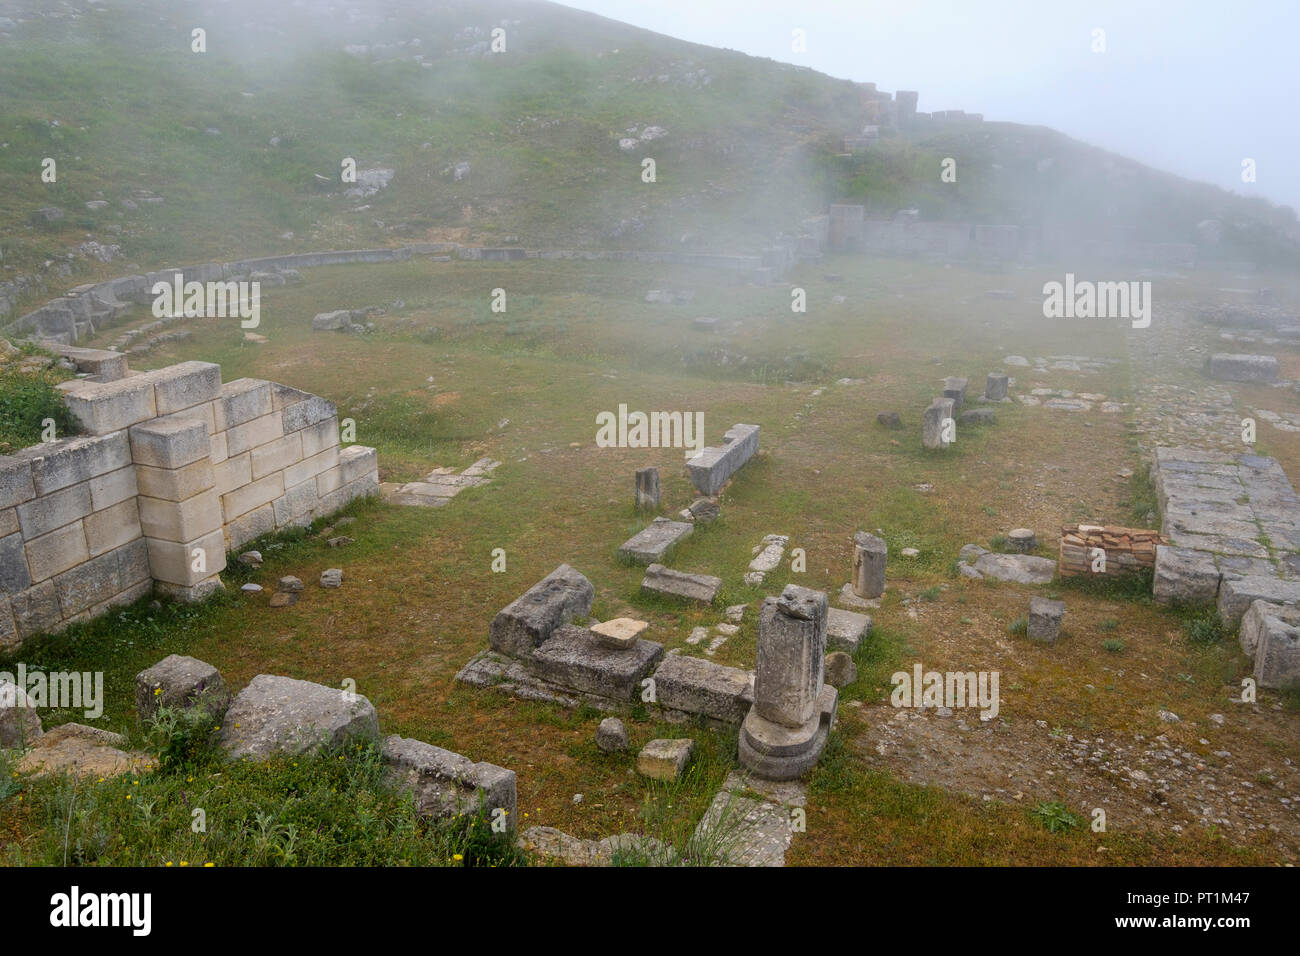 Albania, Fier County, ancient city Byllis, amphitheatre - Stock Image